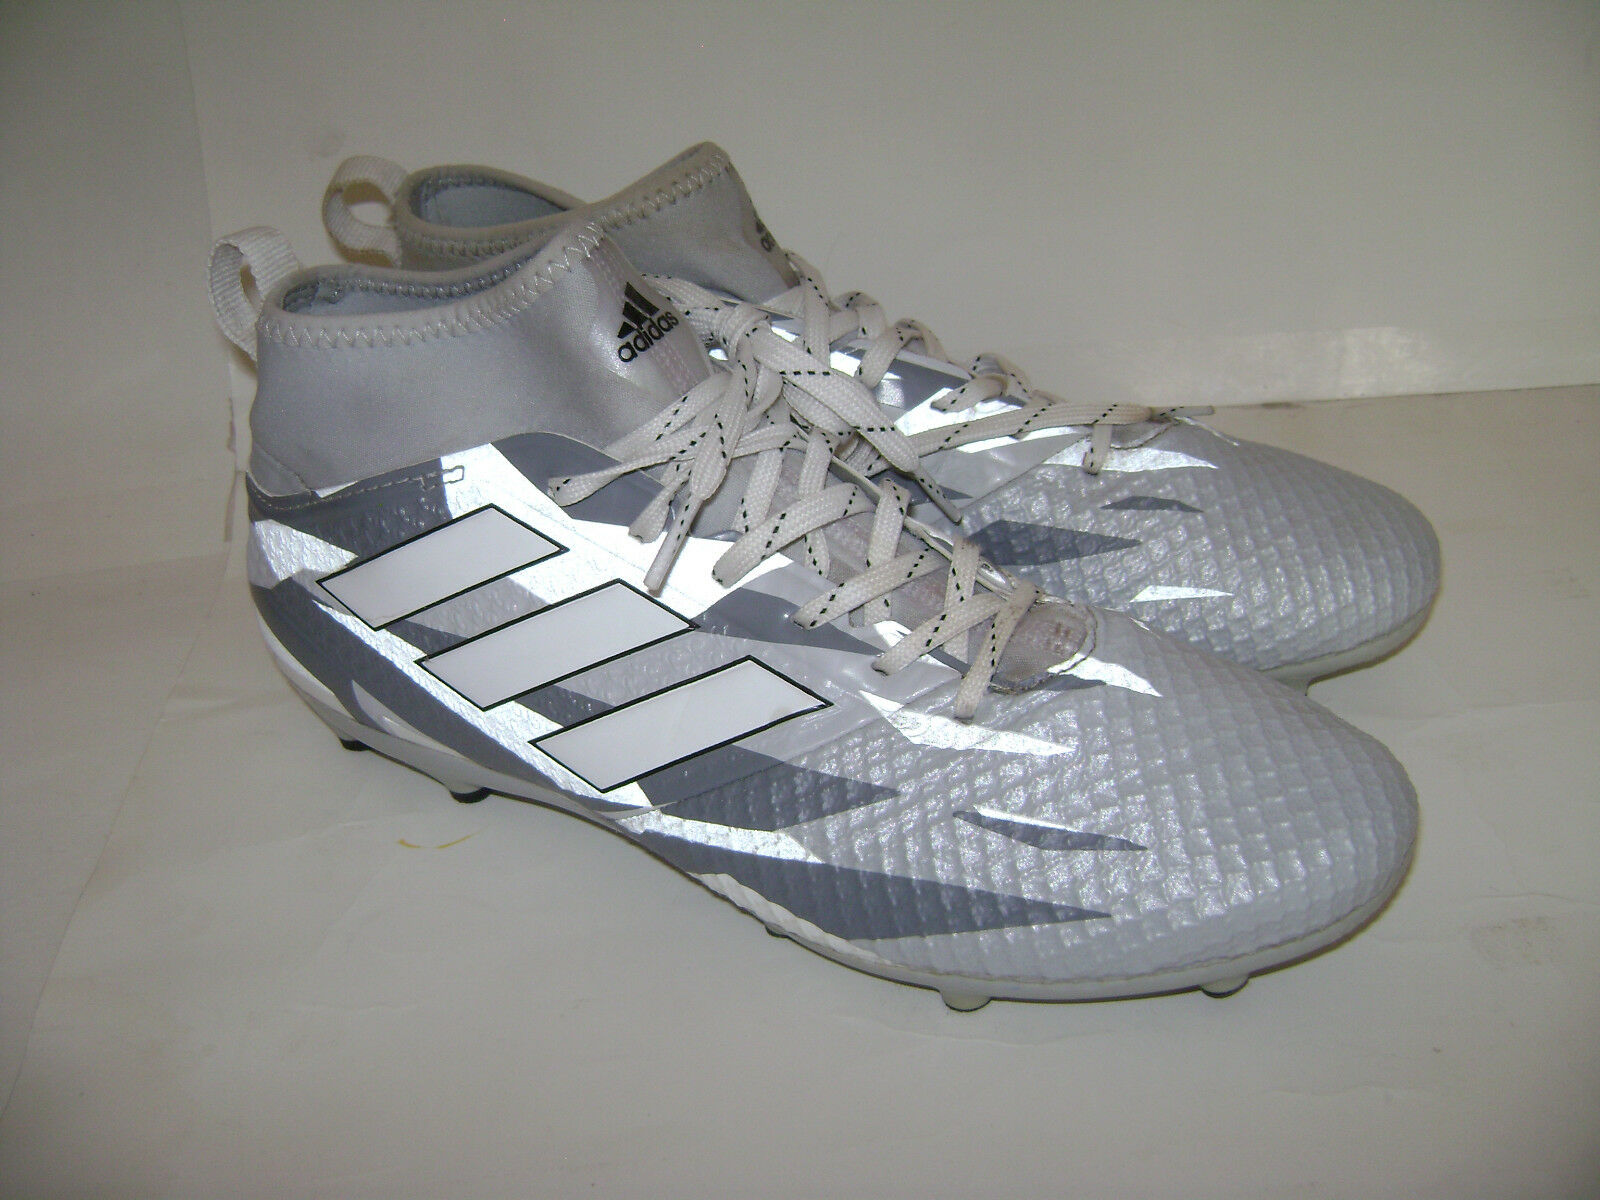 ADIDAS ACE 17.3 PRIMEMESH FG SOCCER CLEATS MENS SHOES BB1015 size 8.5 GRAY WHITE